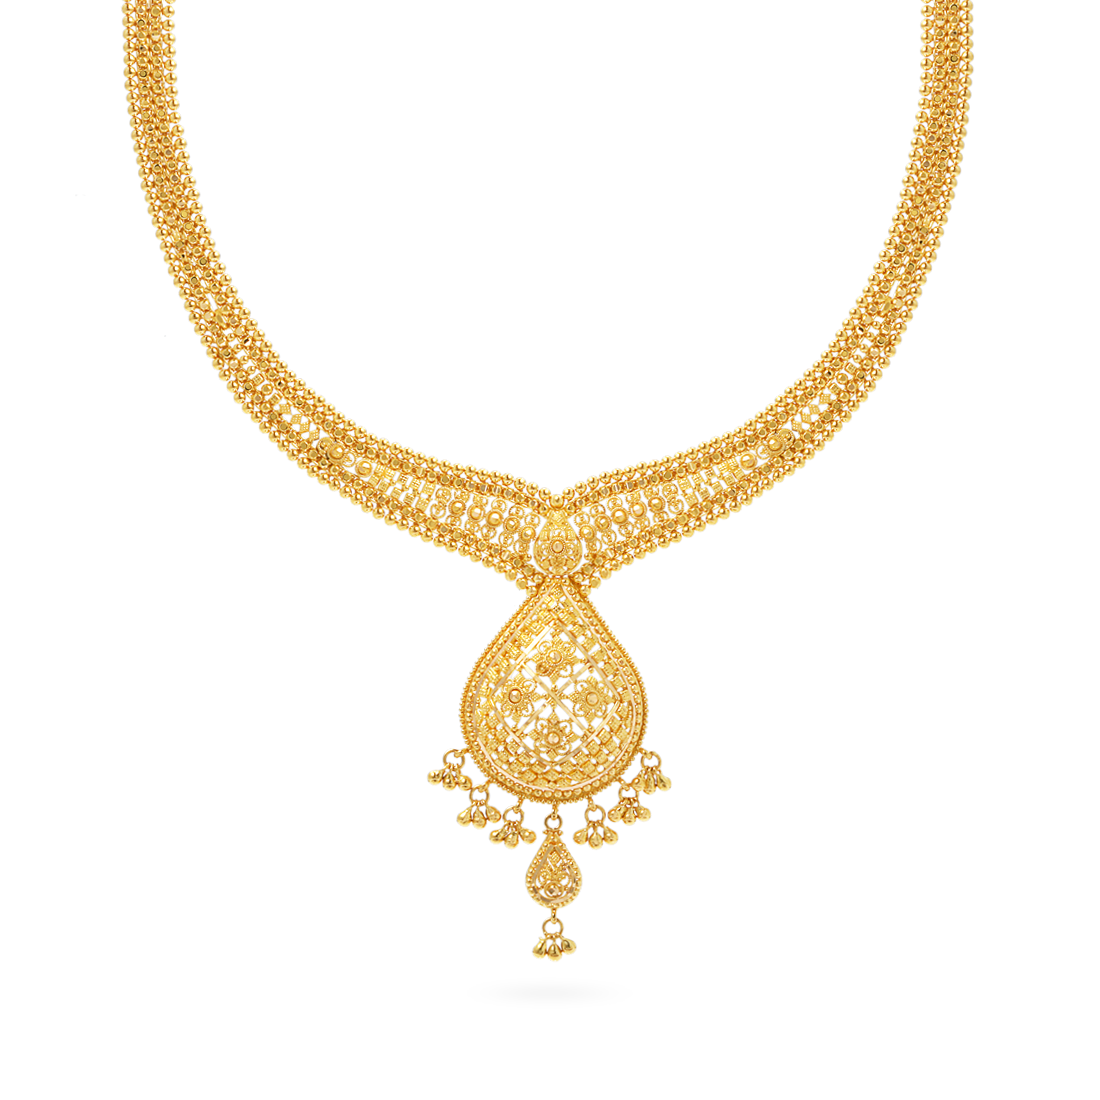 Jali 22ct Gold Filigree Necklace | Love Gold | Pinterest | Gold ...